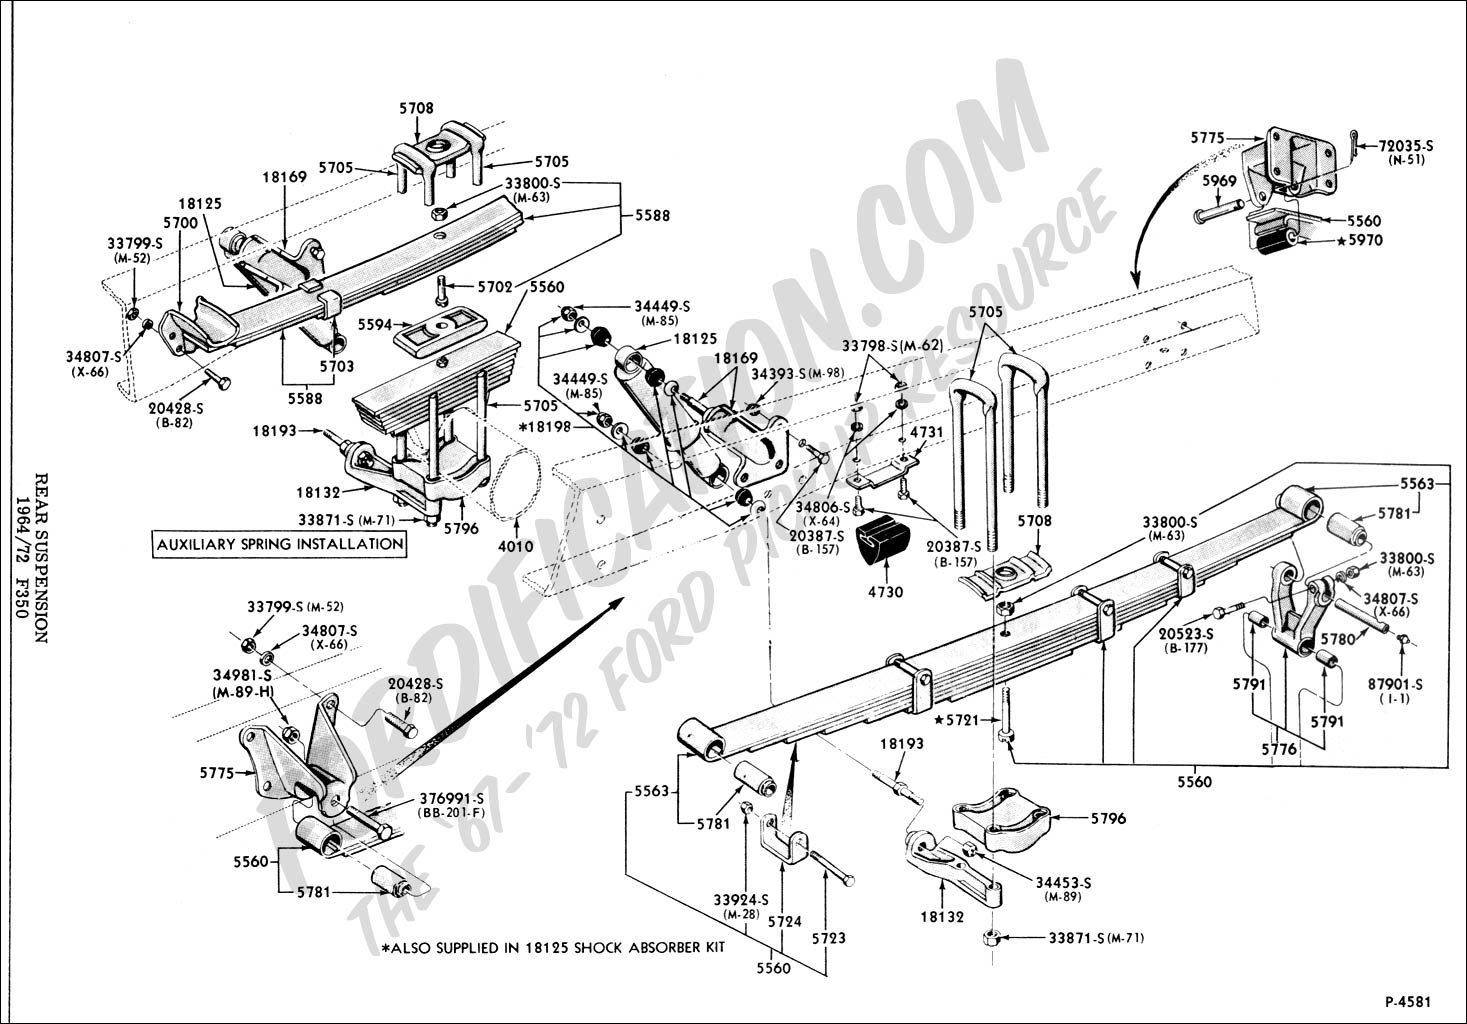 2000 F250 Front Suspension Diagram Wiring Data Diagrams 2004 Ford Expedition Truck F350 Best Secret U2022 2003 4x4 End